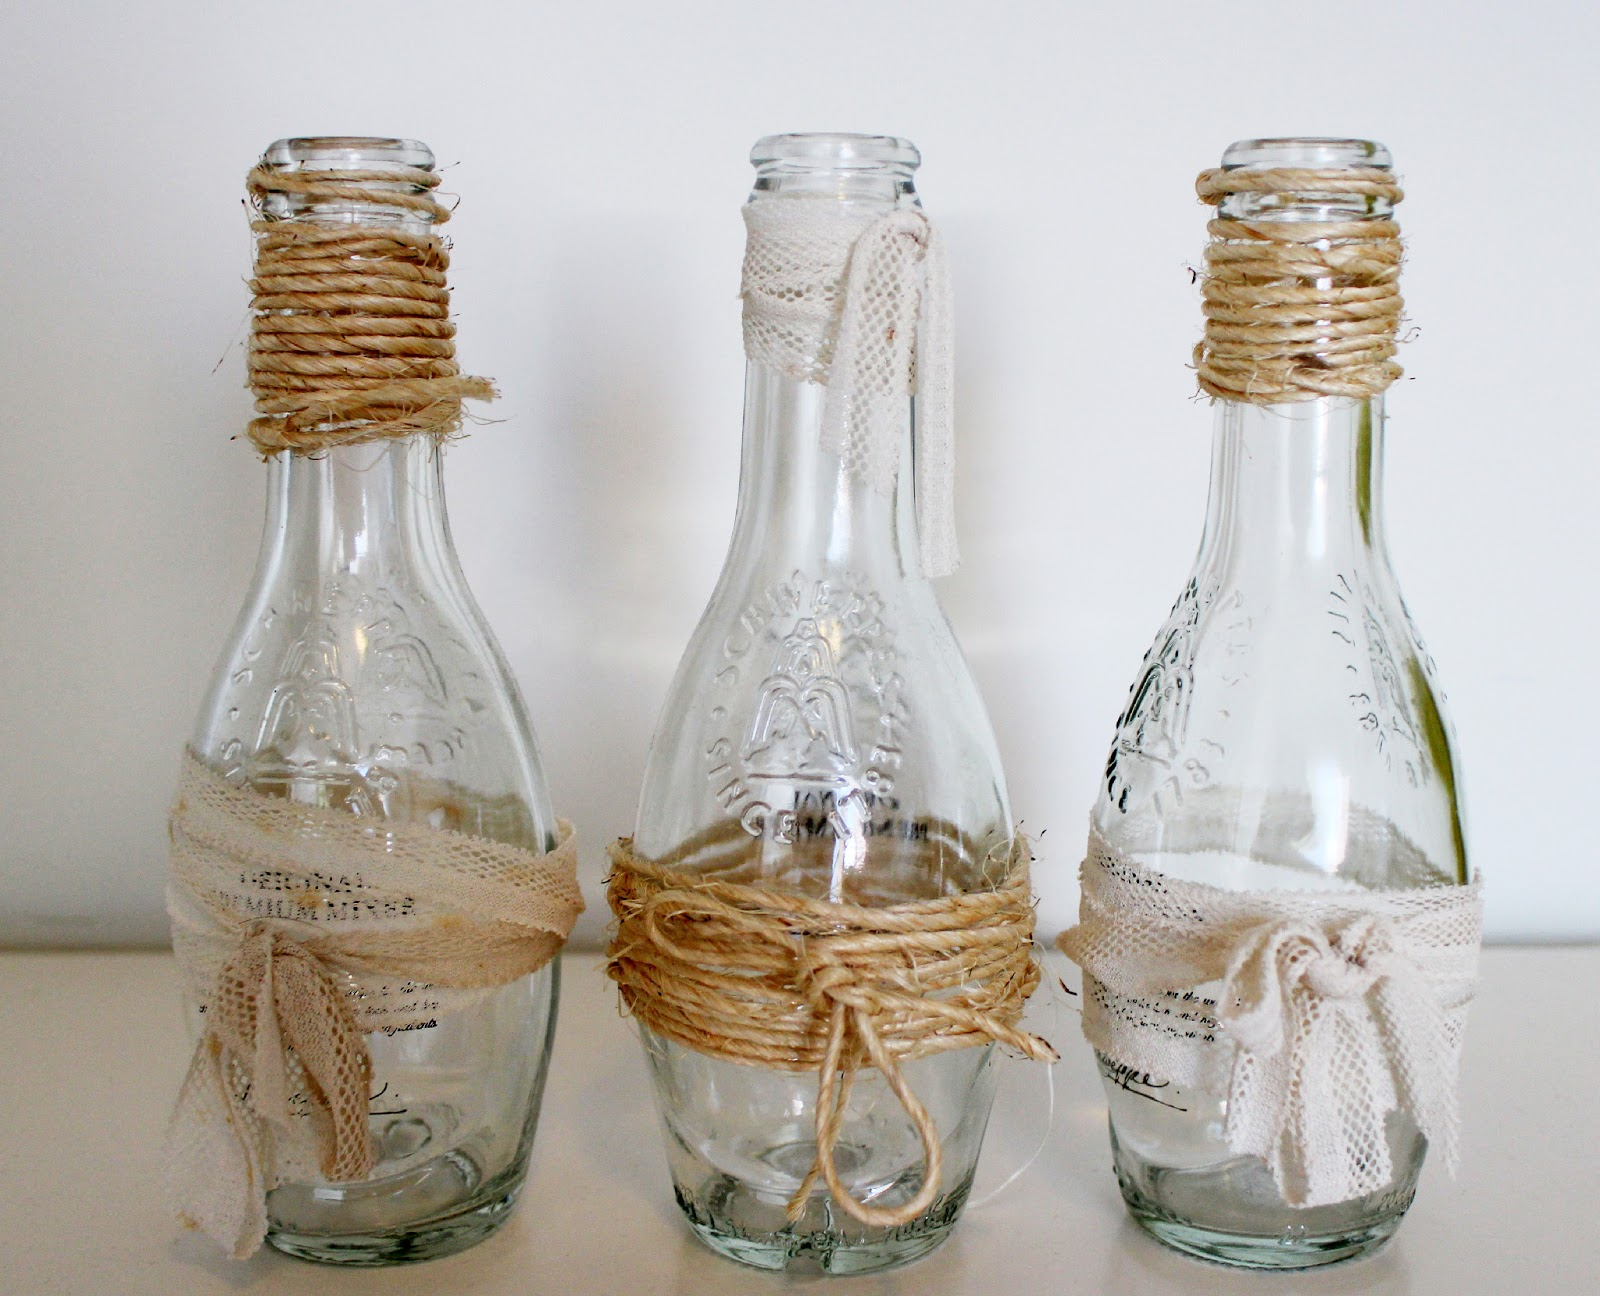 Ideas creativas con botellas elena sevilla - Botellas de cristal decoradas ...